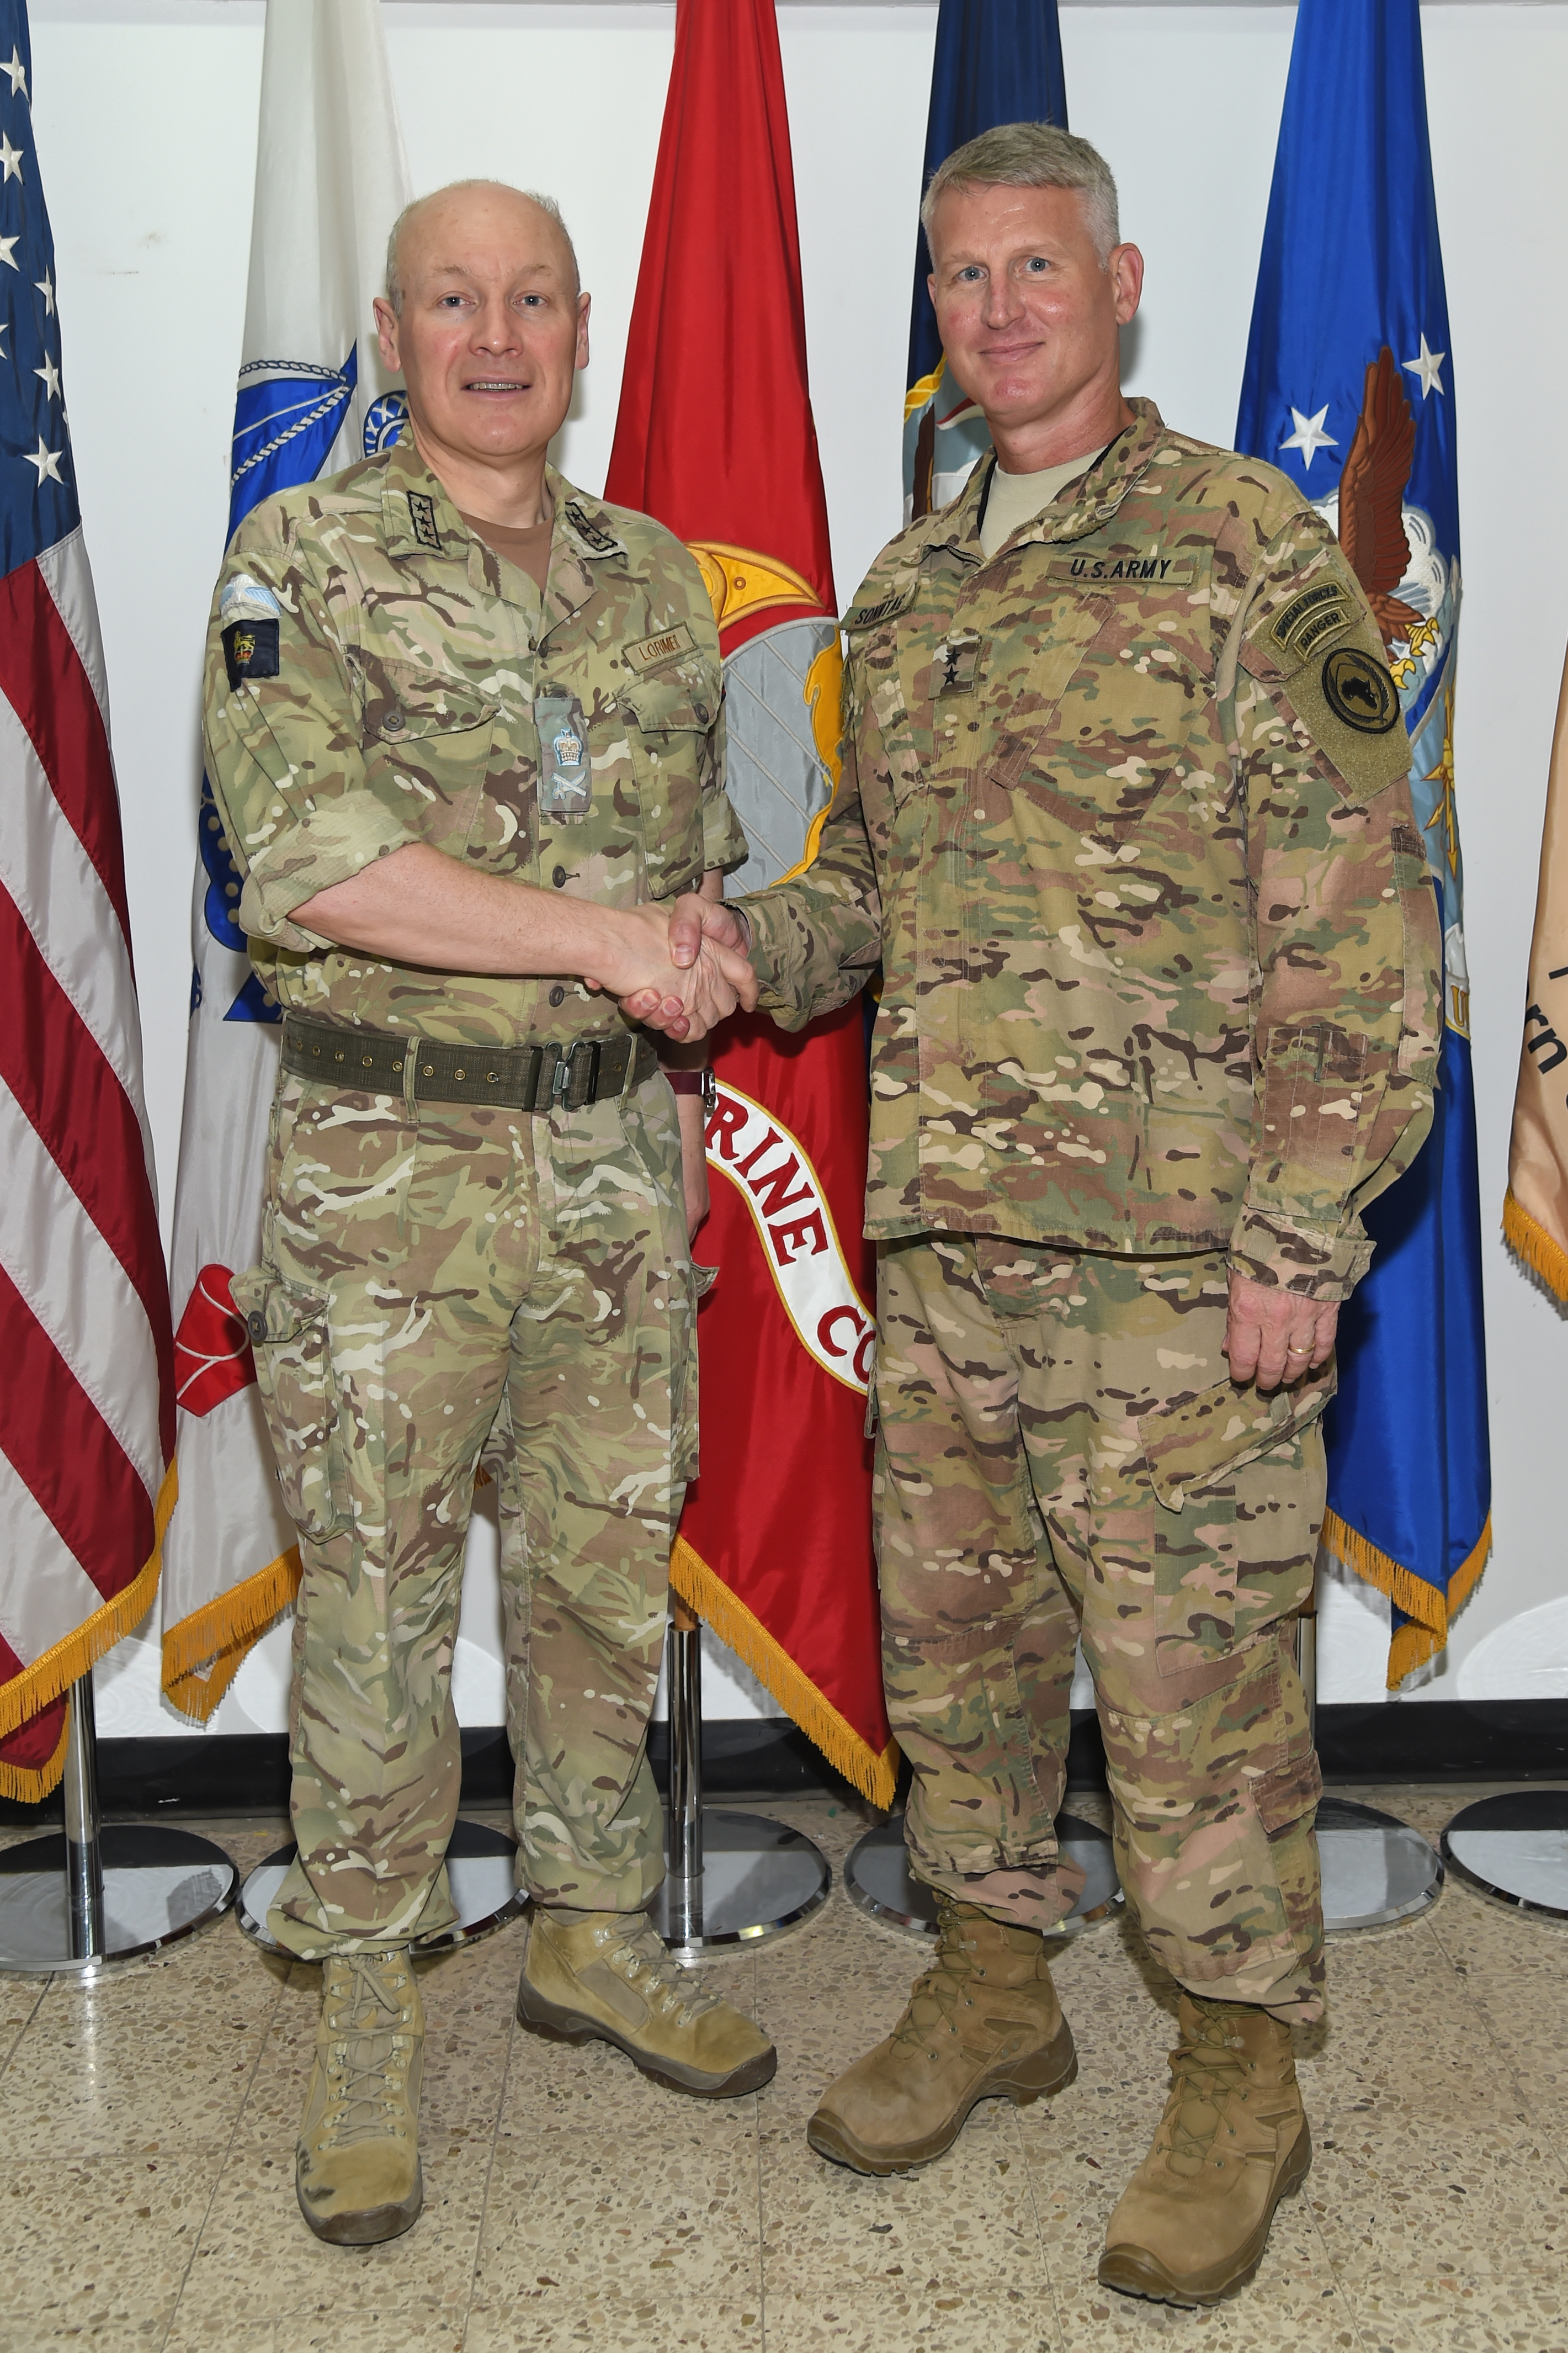 British Army Lt. Gen. Sir John Lorimer, chief of joint operations for Permanent Joint Headquarters in Great Britain meets with U.S. Army Maj. Gen. Kurt Sonntag, commanding general of the Combined Joint Task Force-Horn of Africa at Camp Lemonnier, Djibouti Feb. 21, 2017, while conducting a visit of U.K. military members serving in the Horn of Africa. The meeting allowed Lorimer to better understand U.S. plans for aiding with the stability and security of Somalia. (U.S. Air National Guard photo by Master Sgt. Paul Gorman)